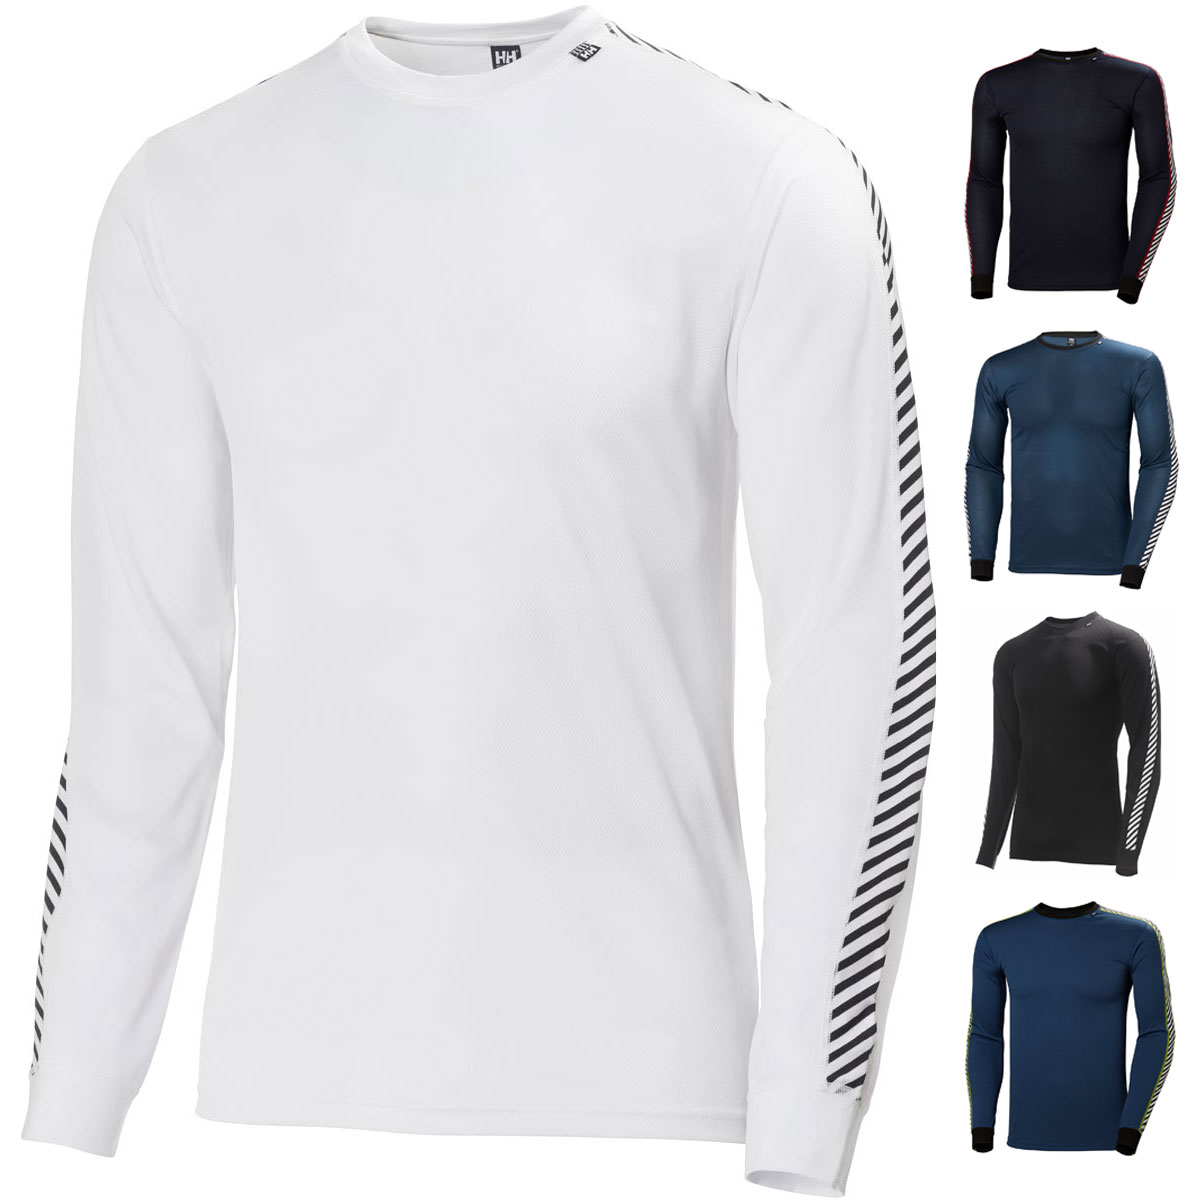 Grenadine All Sizes Helly Hansen Hh Lifa Crew Mens Base Layer Top